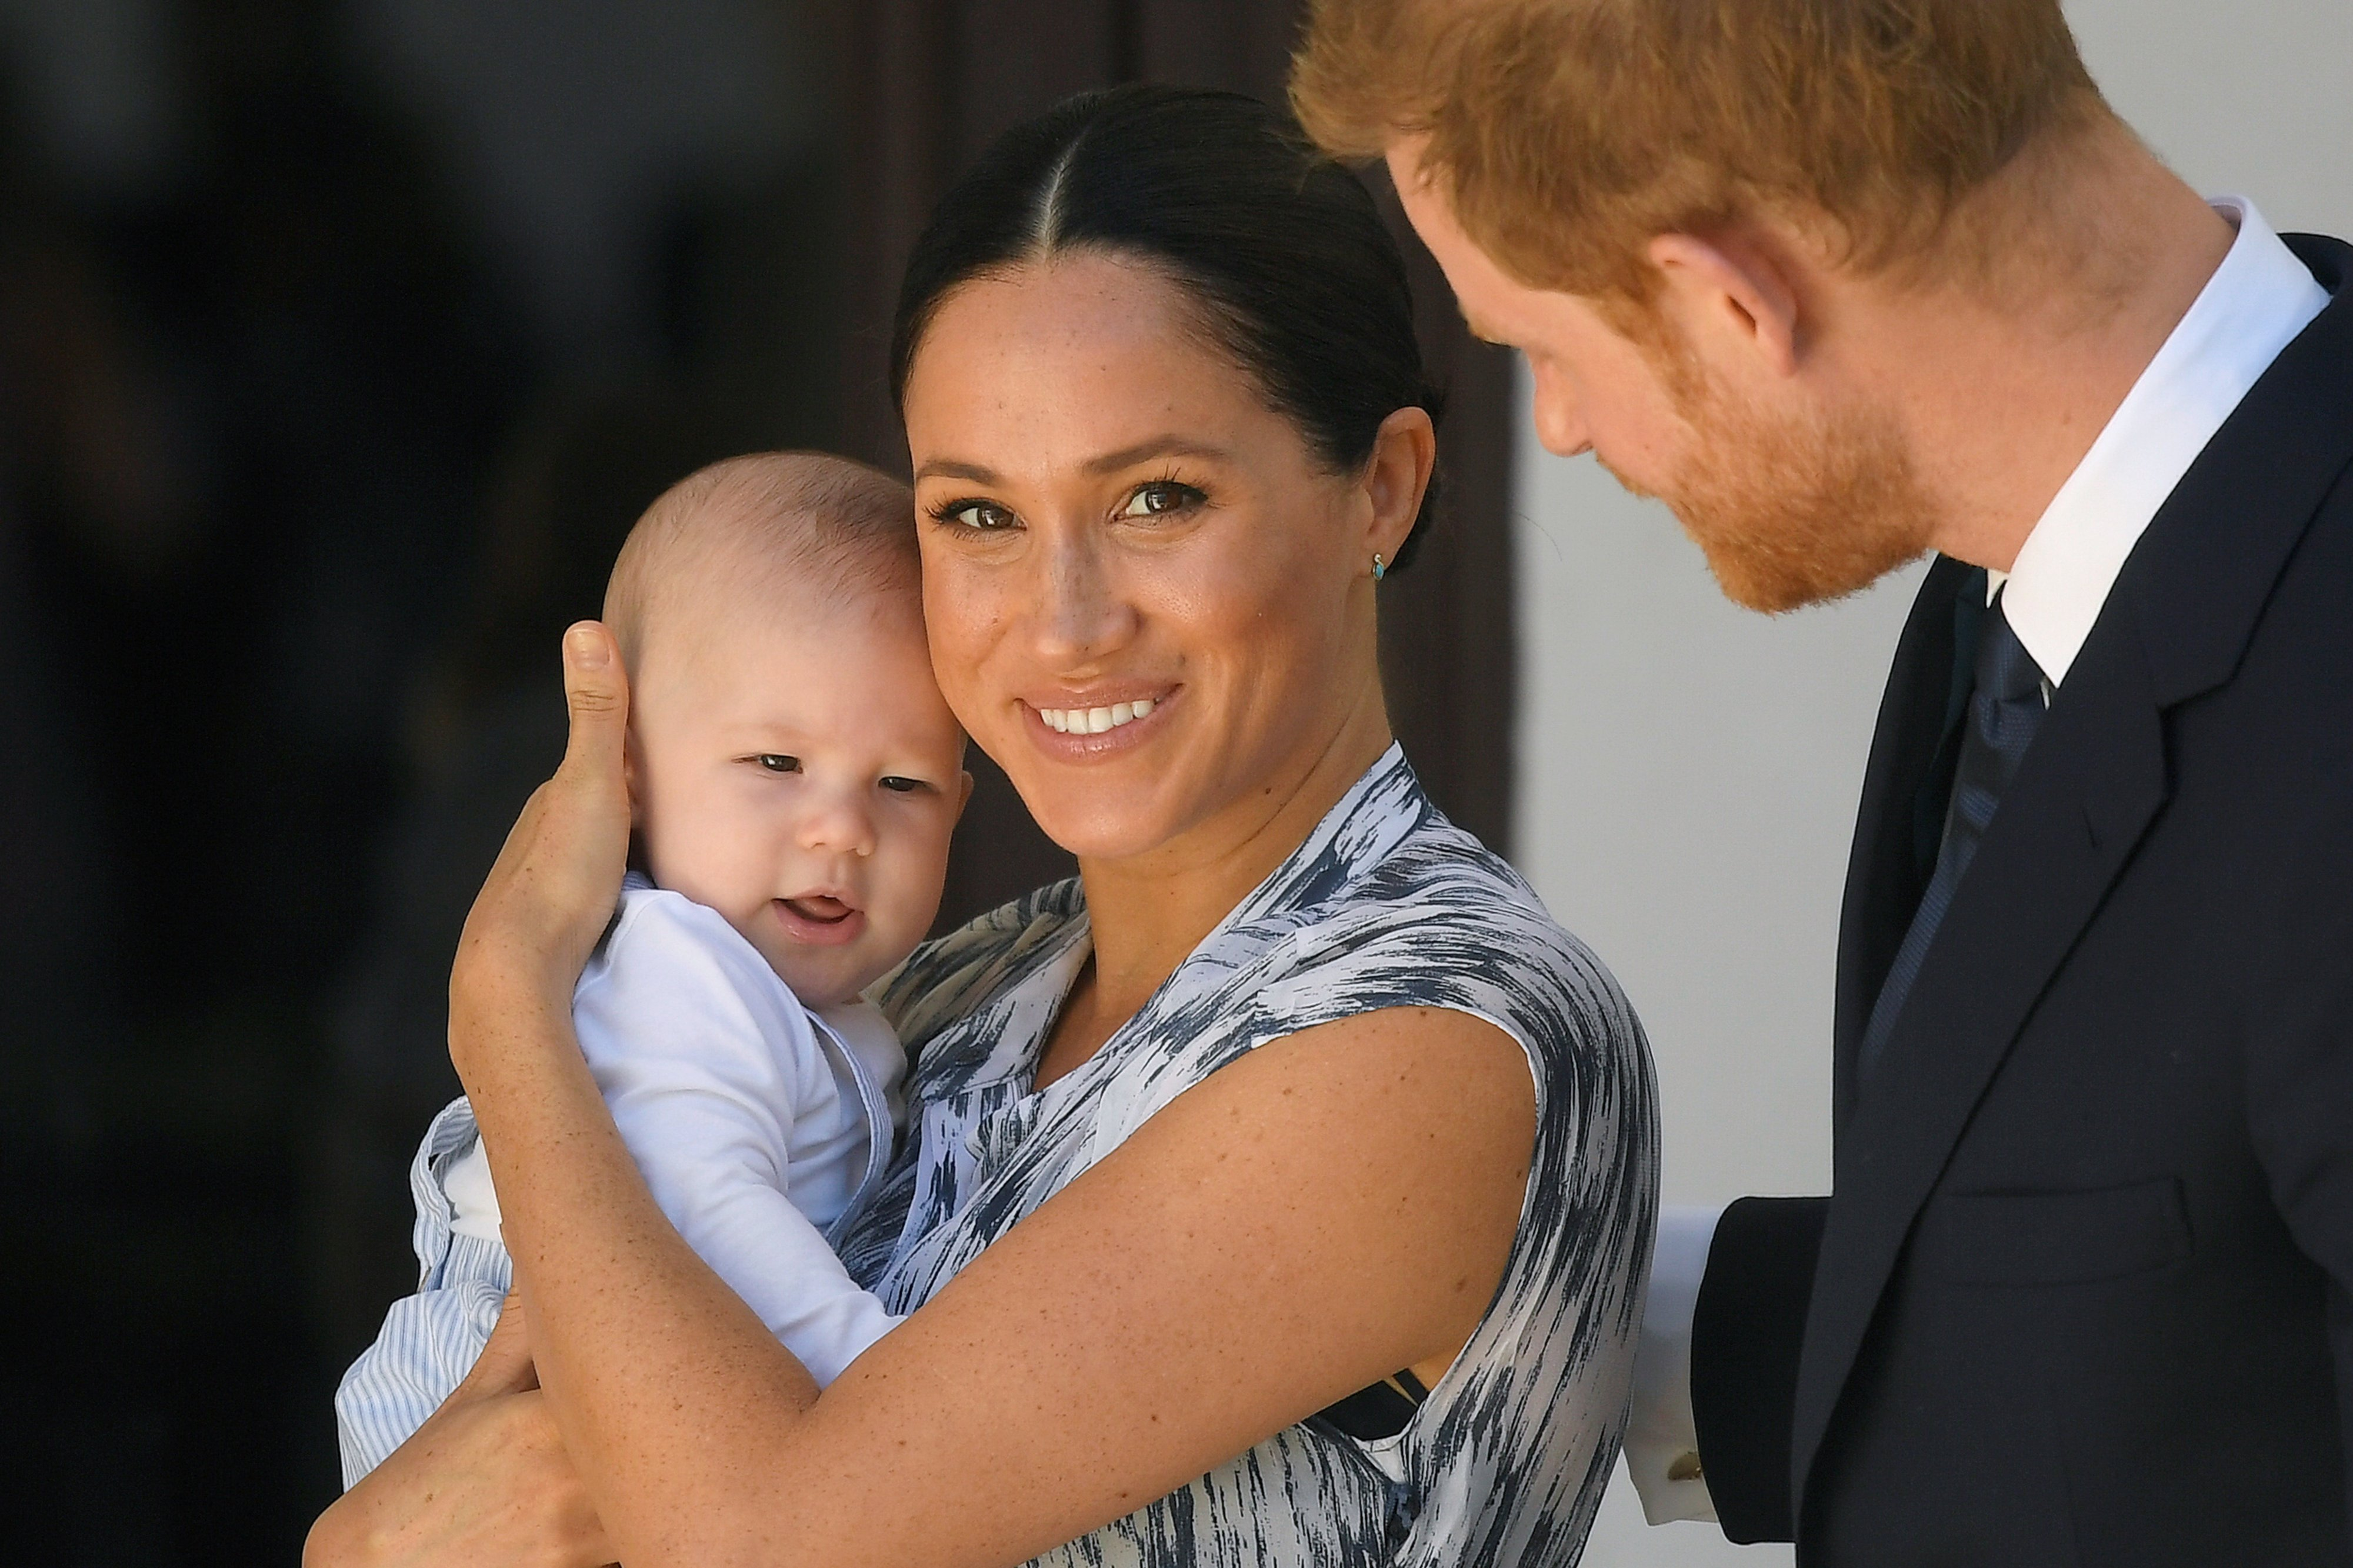 Prince Harry, Meghan Markle, and their son Archie during their royal tour of South Africa on September 25, 2019, in Cape Town, South Africa. | Photo: Getty Images.